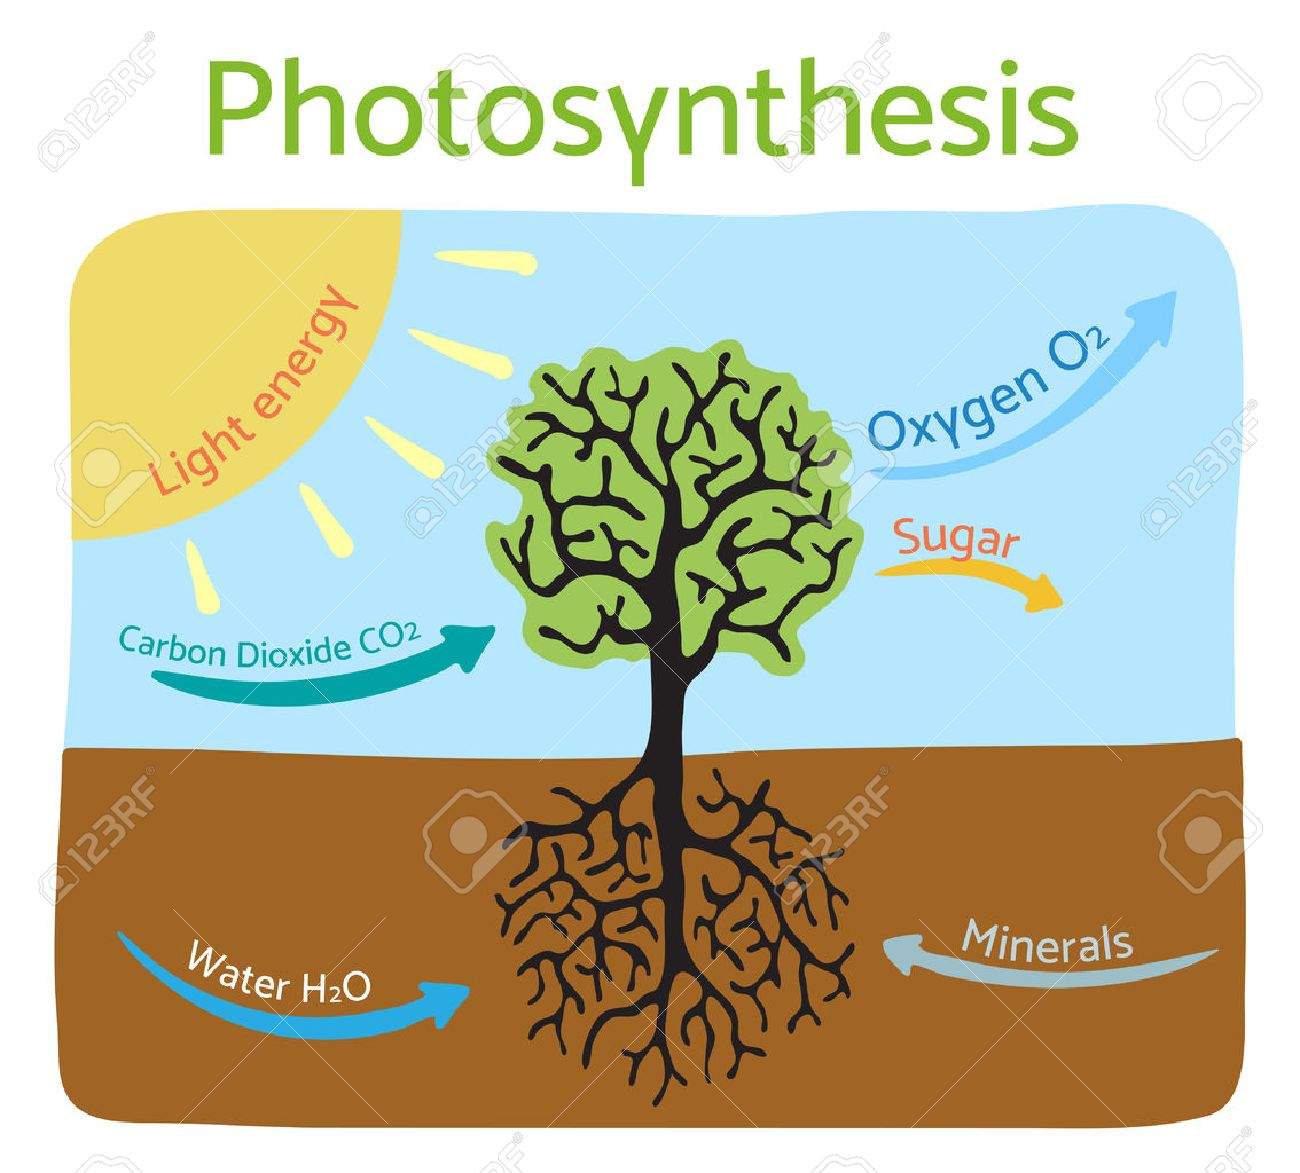 Photosynthesis diagram schematic illustration of the photosynthesis diagram schematic illustration of the photosynthesis process stock vector 56913780 pooptronica Image collections